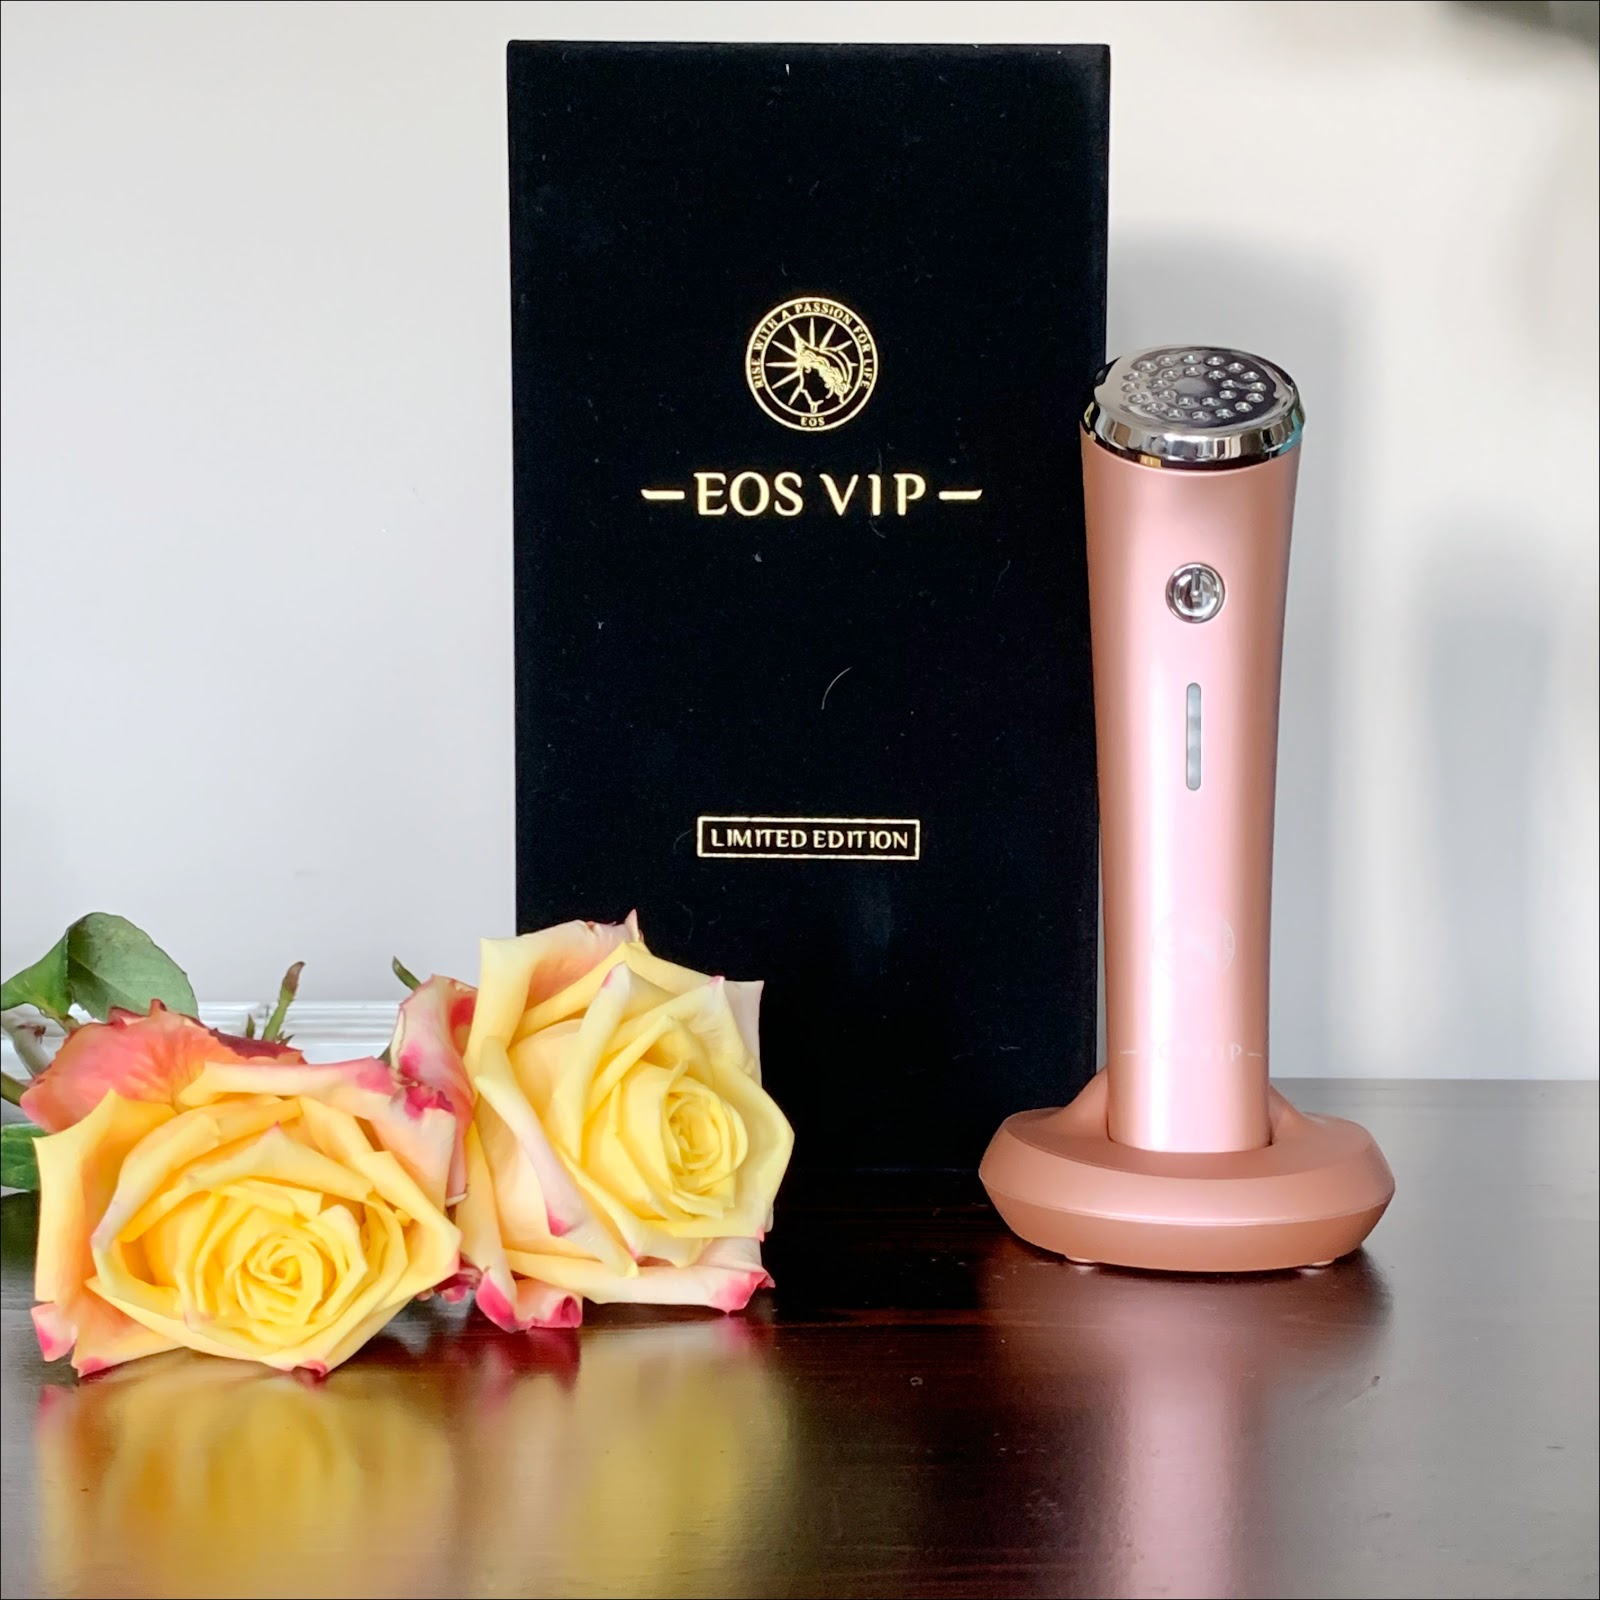 my midlife fashion, eos vip non surgical face lift machine